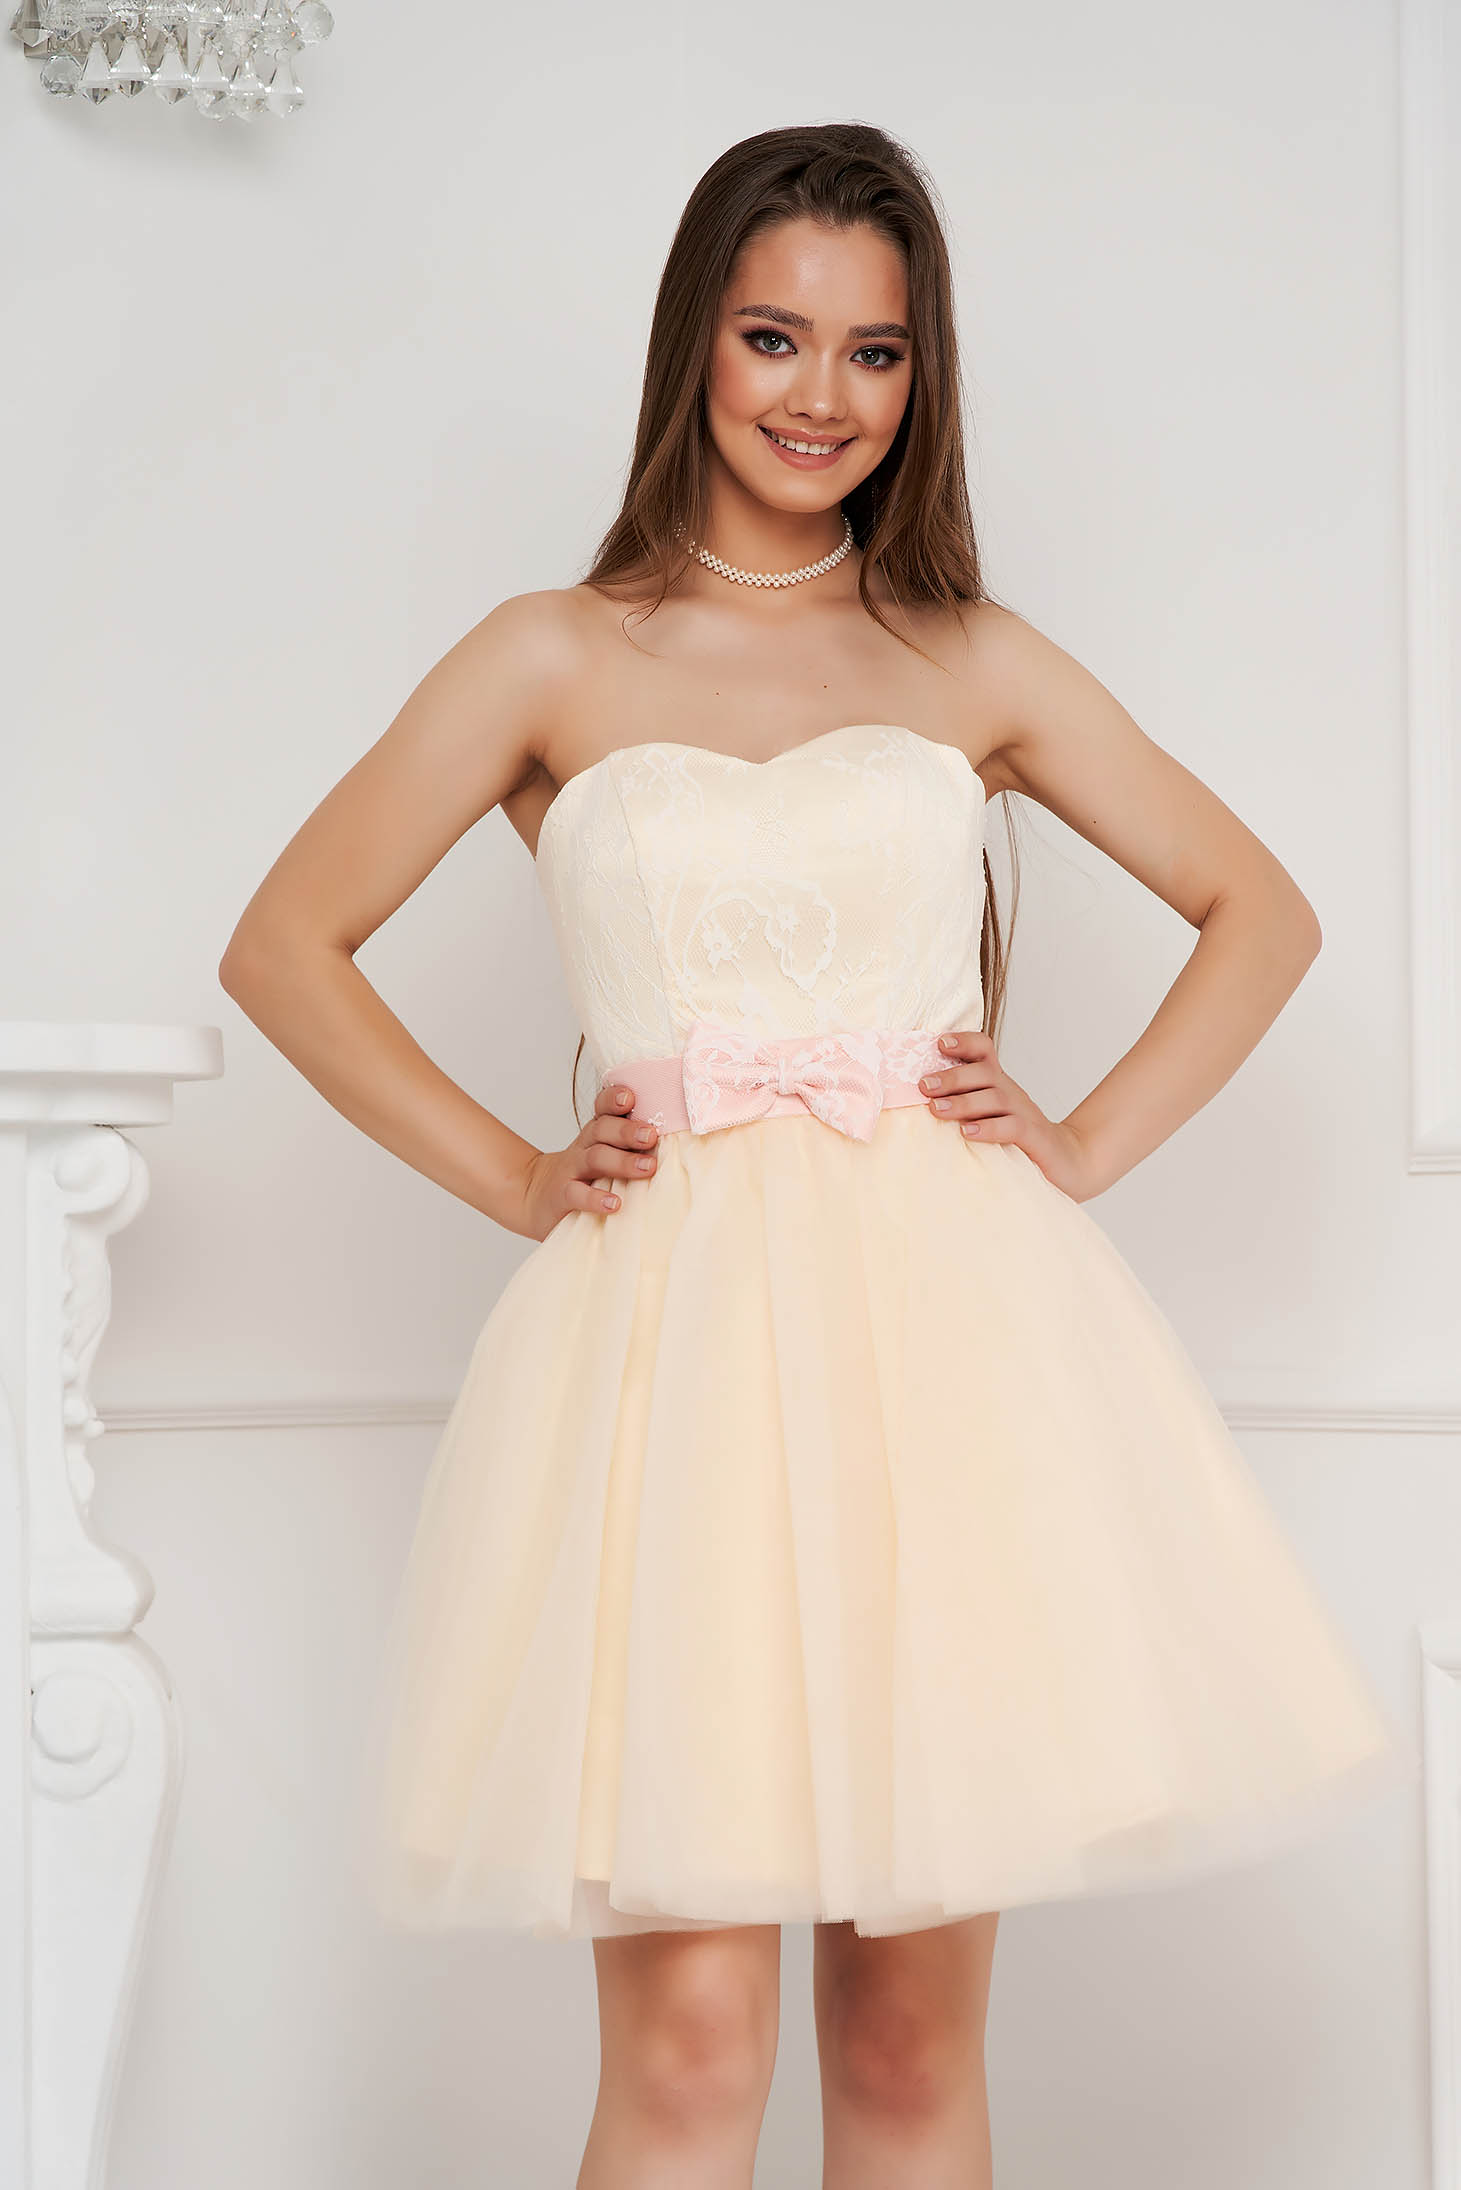 Ivory dress short cut occasional from tulle with lace details with bow